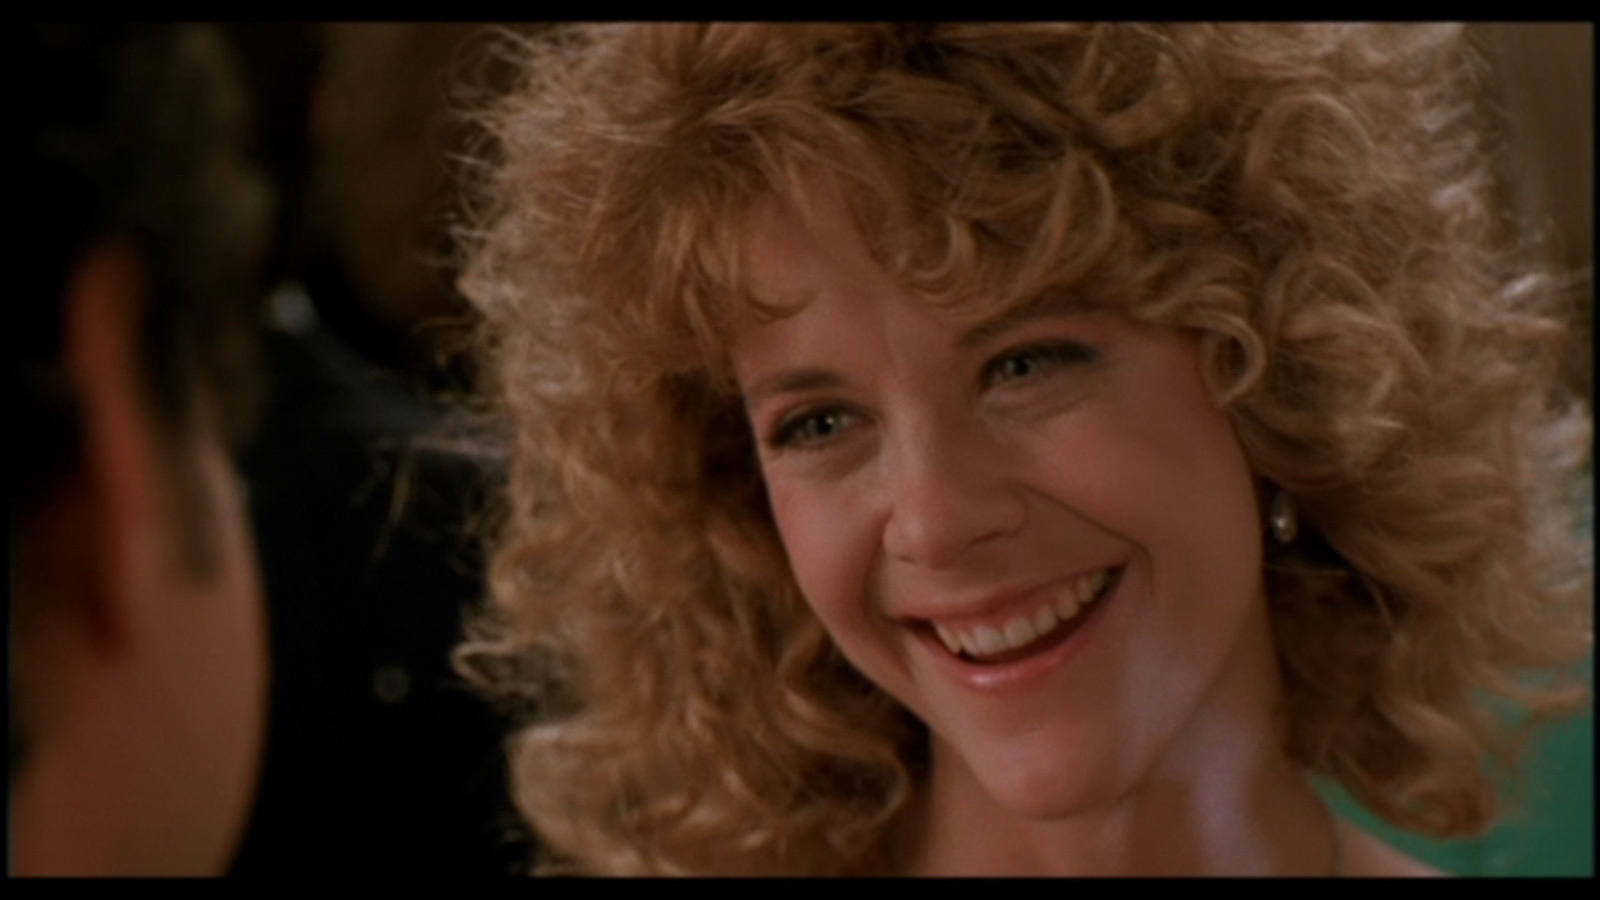 a movie analysis of when harry met sally This is an edited version of the analysis that was previously posted on keerdowordpresscom when harry met sally (1989) written by nora ephron even though it's not one scene but a sequence, i'll treat it as one continuous event.